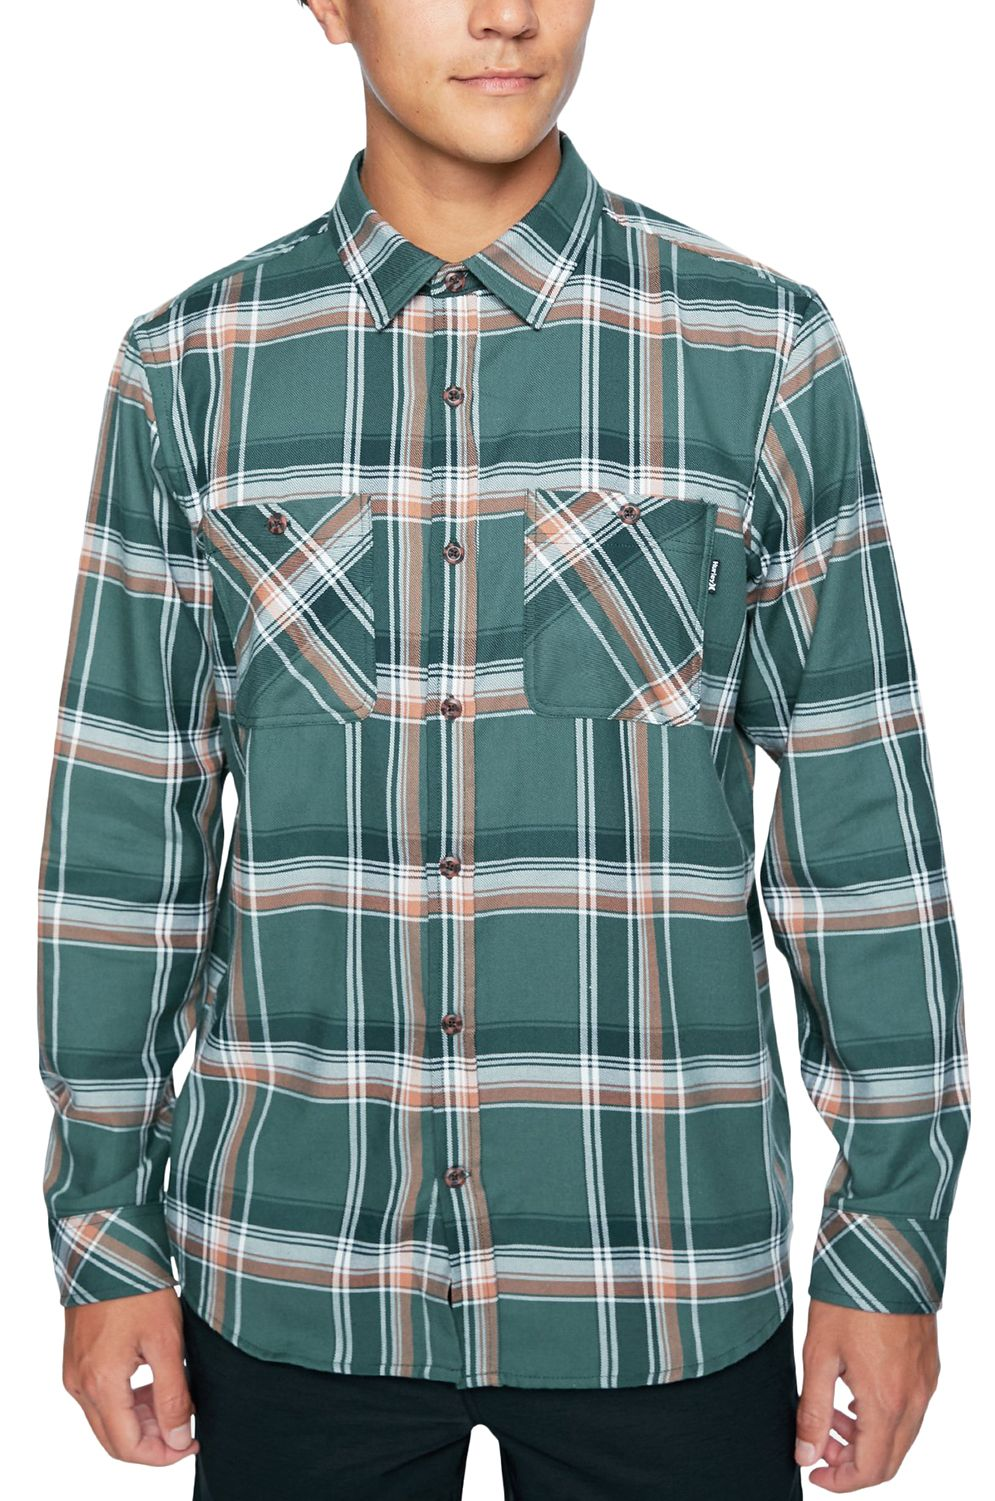 Hurley Shirt M DF HUNTER FLANNEL LS Vintage Green